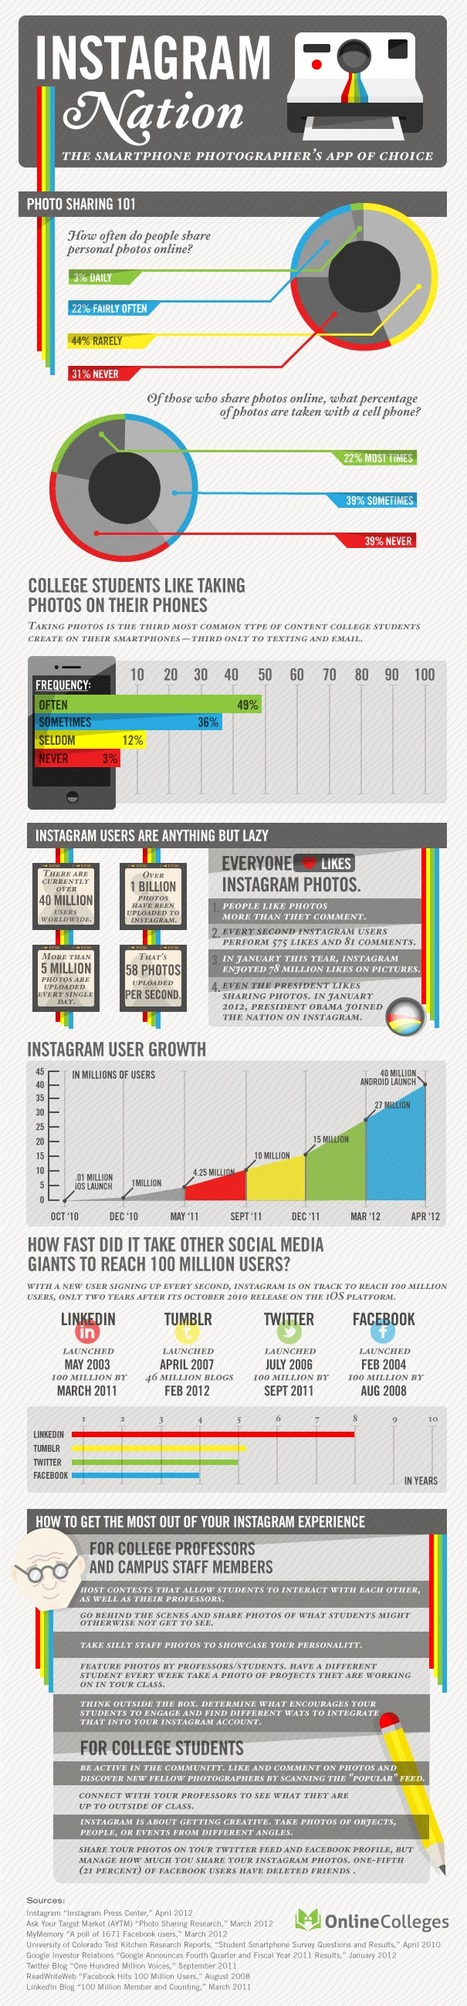 How Instagram Took America by Storm [INFOGRAPHIC] | Mobile Marketing Strategy and beyond | Scoop.it